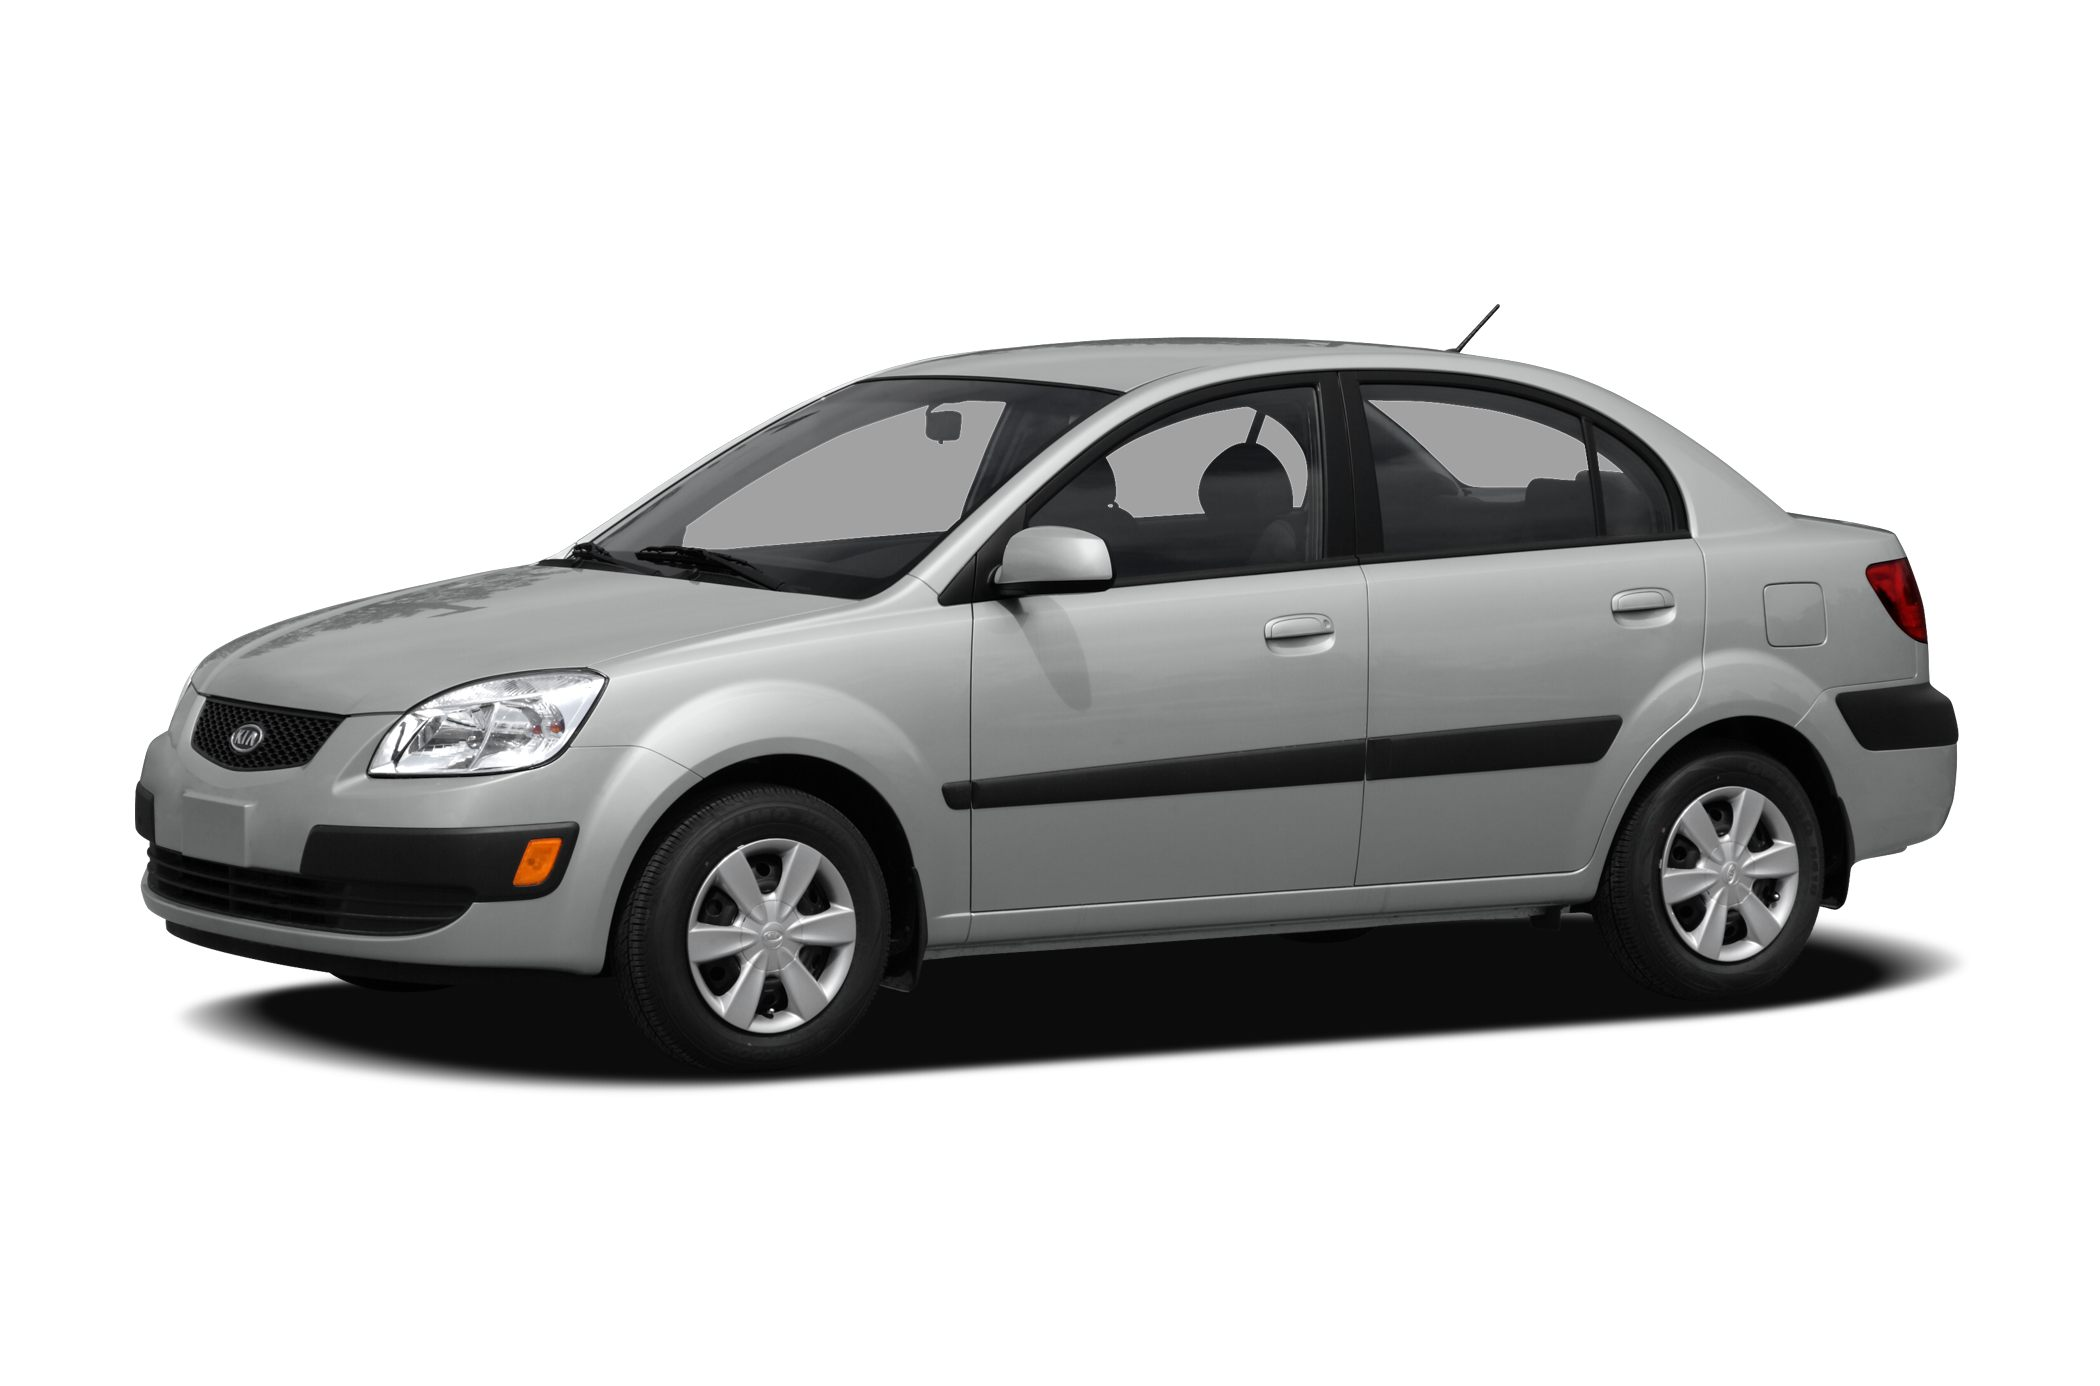 2007 Kia Rio SX Land a steal on this 2007 Kia Rio SX while we have it Comfortable yet agile its